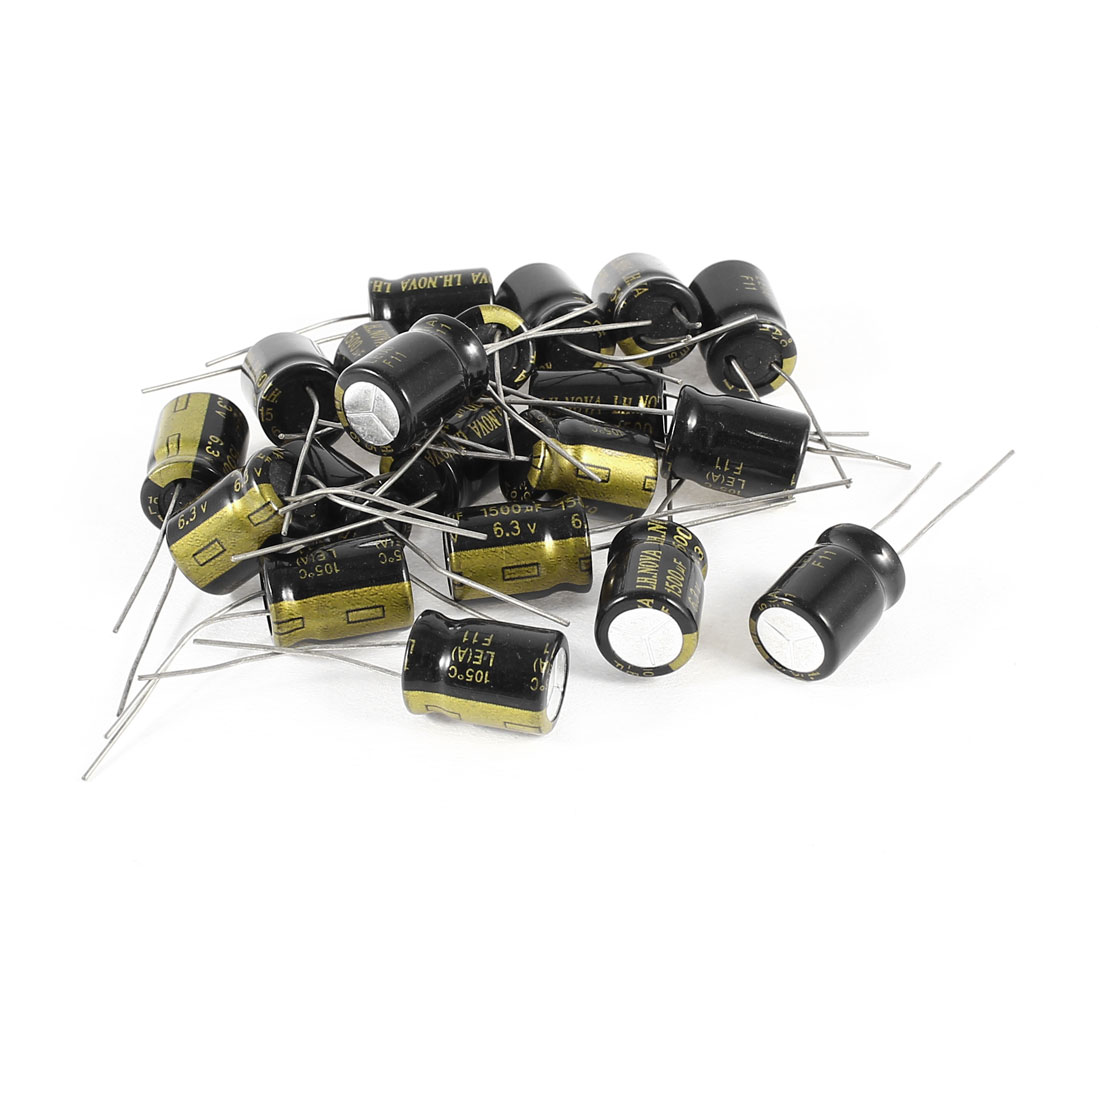 20 Pcs 1500uF 6.3V Radial Leads Aluminum Electrolytic Capacitors 10x15mm